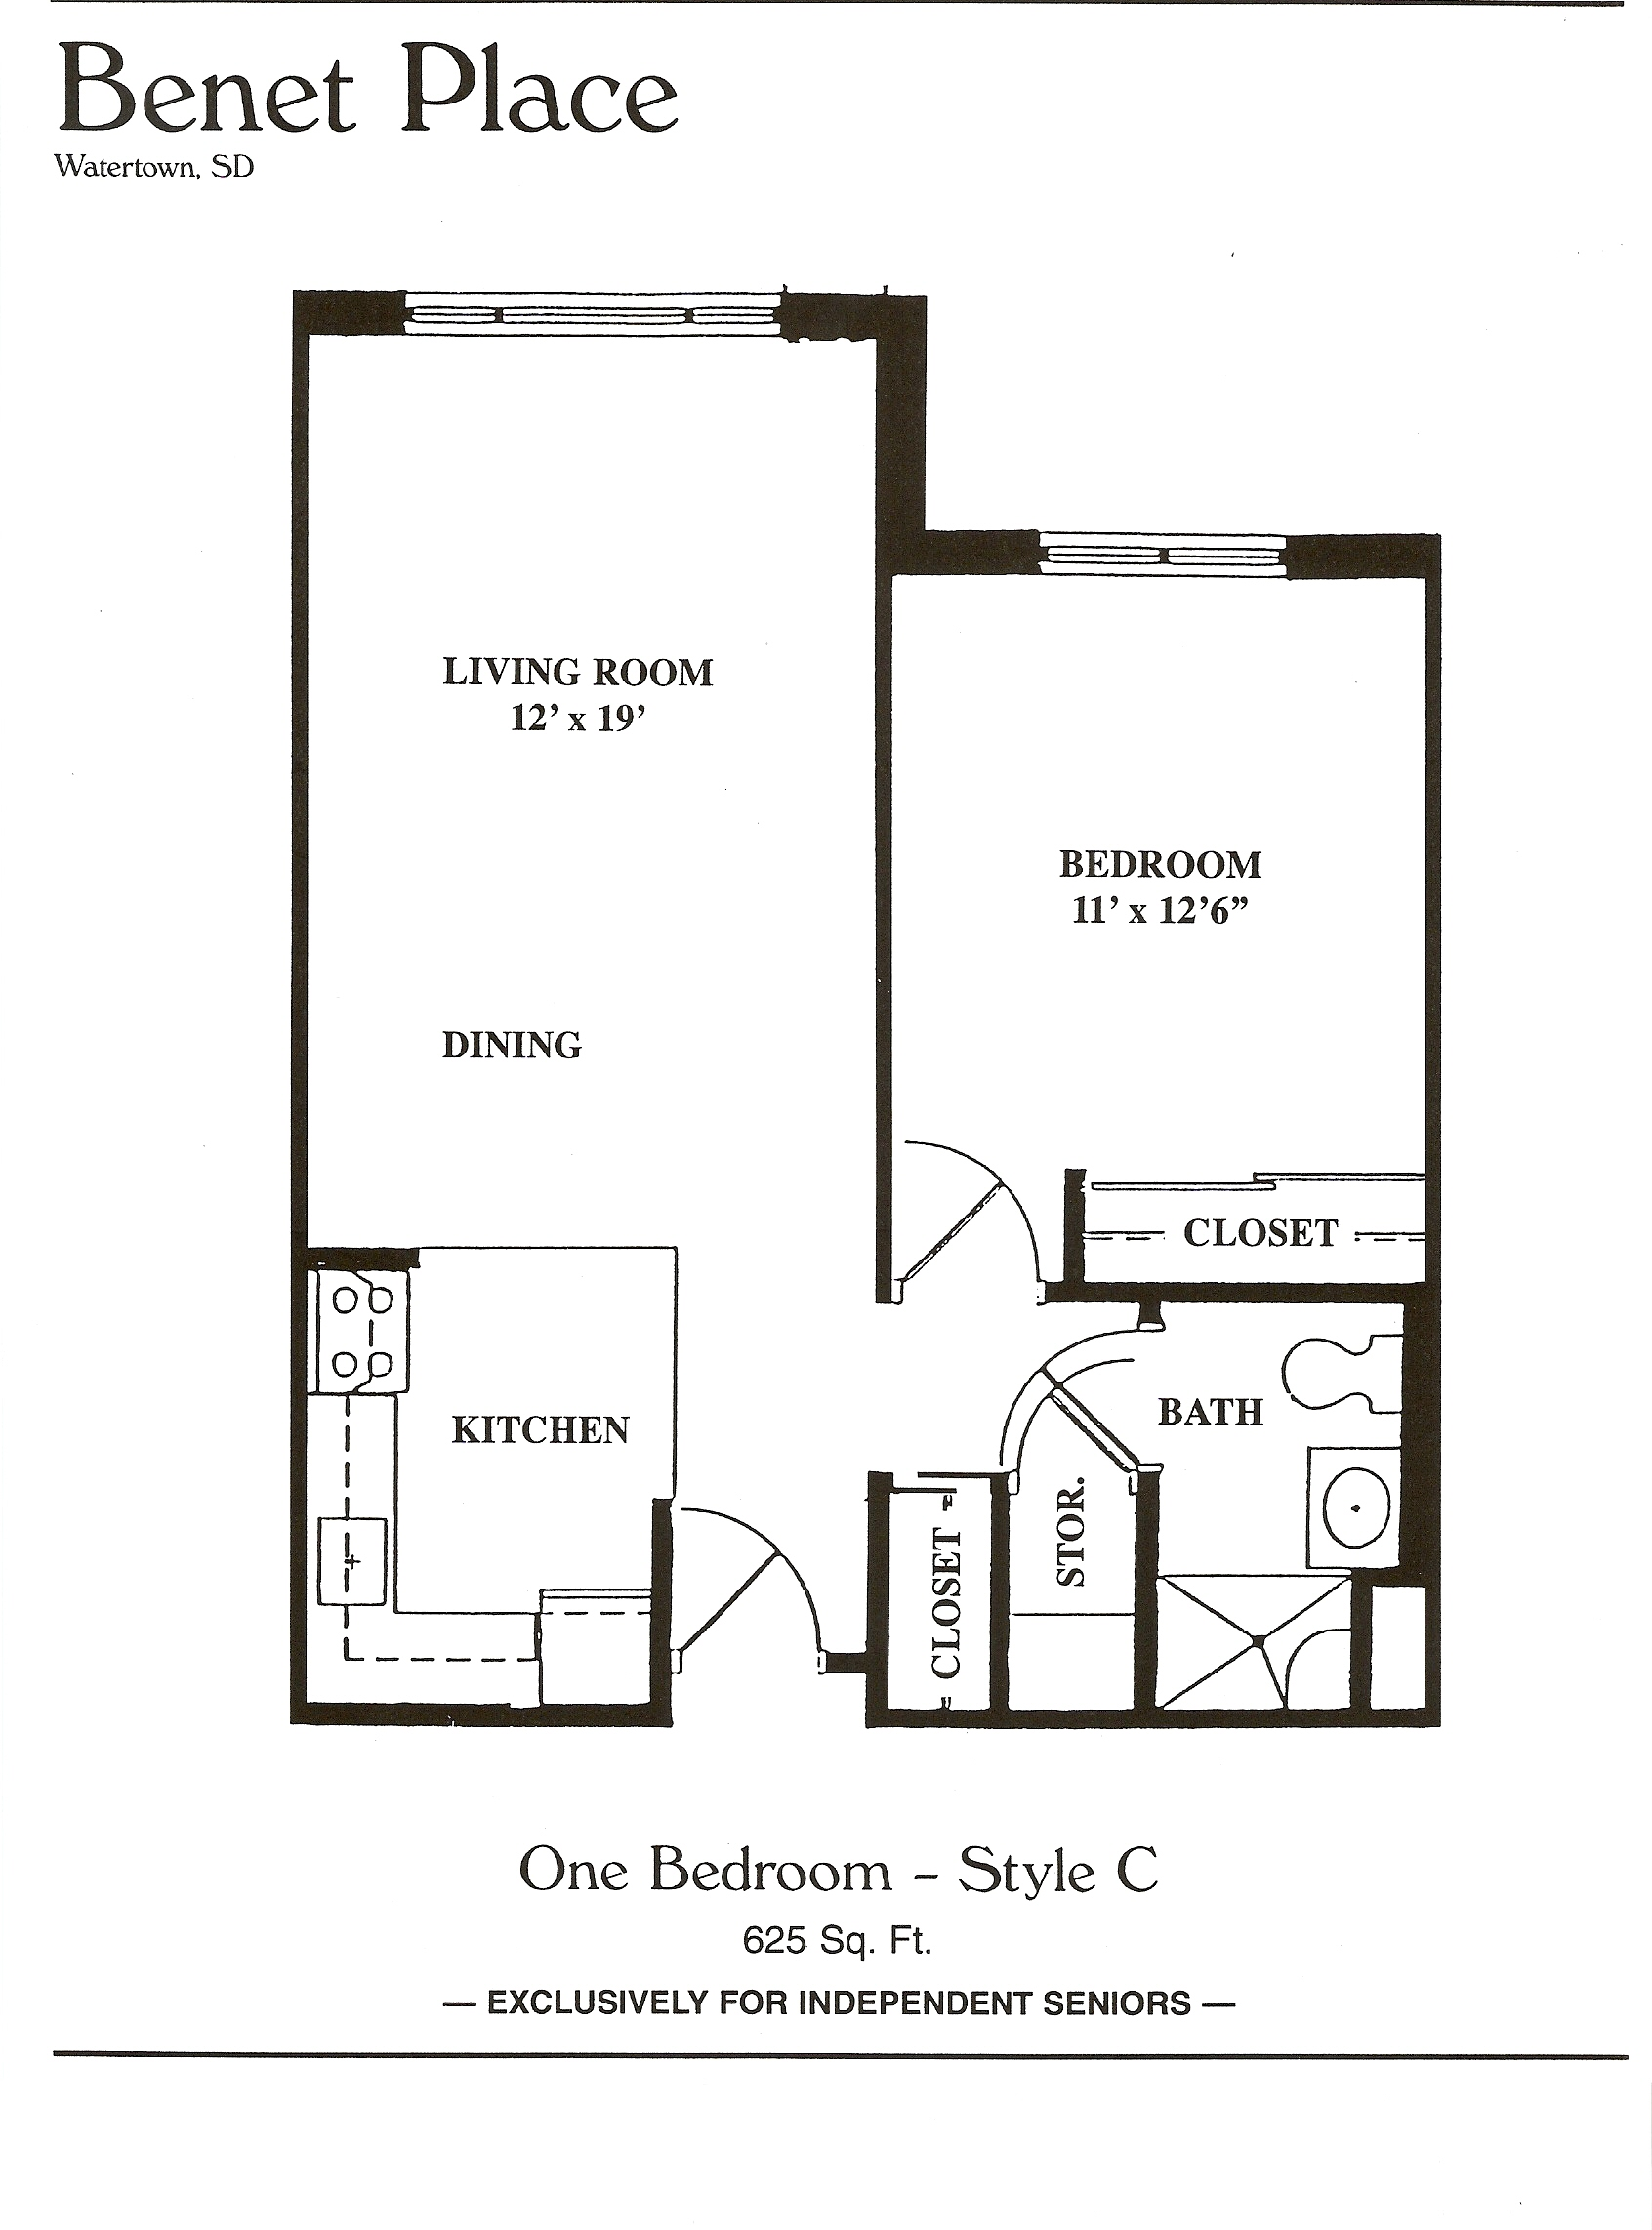 Large 1 bedroom apartment. Floor Plans   Benet Place Senior Apartments Independent Living